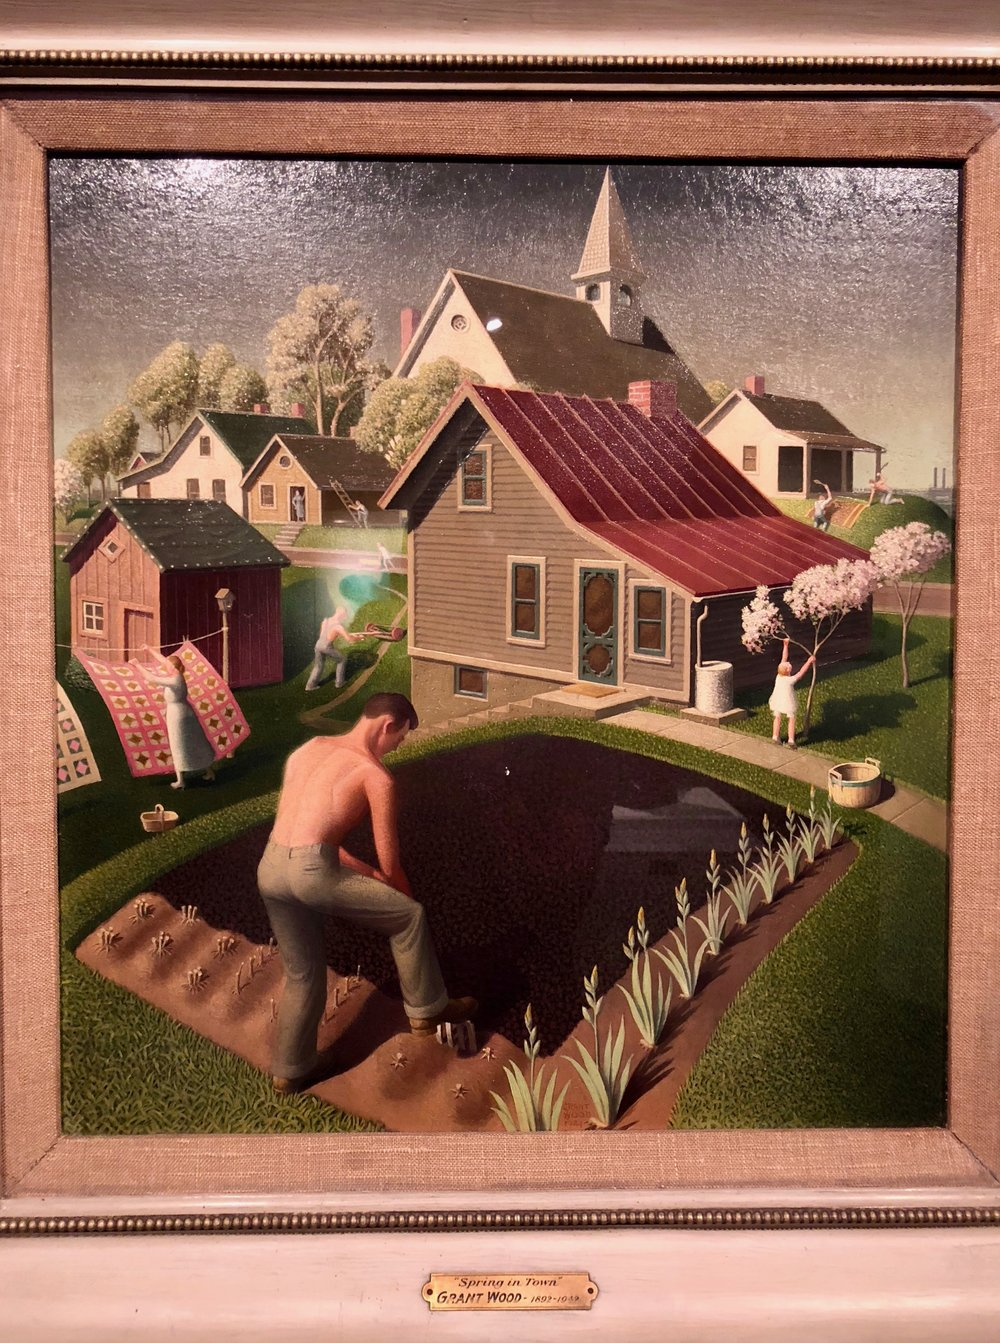 They have Grant Wood's last painting, which just returned from his major exhibition at the Whitney.